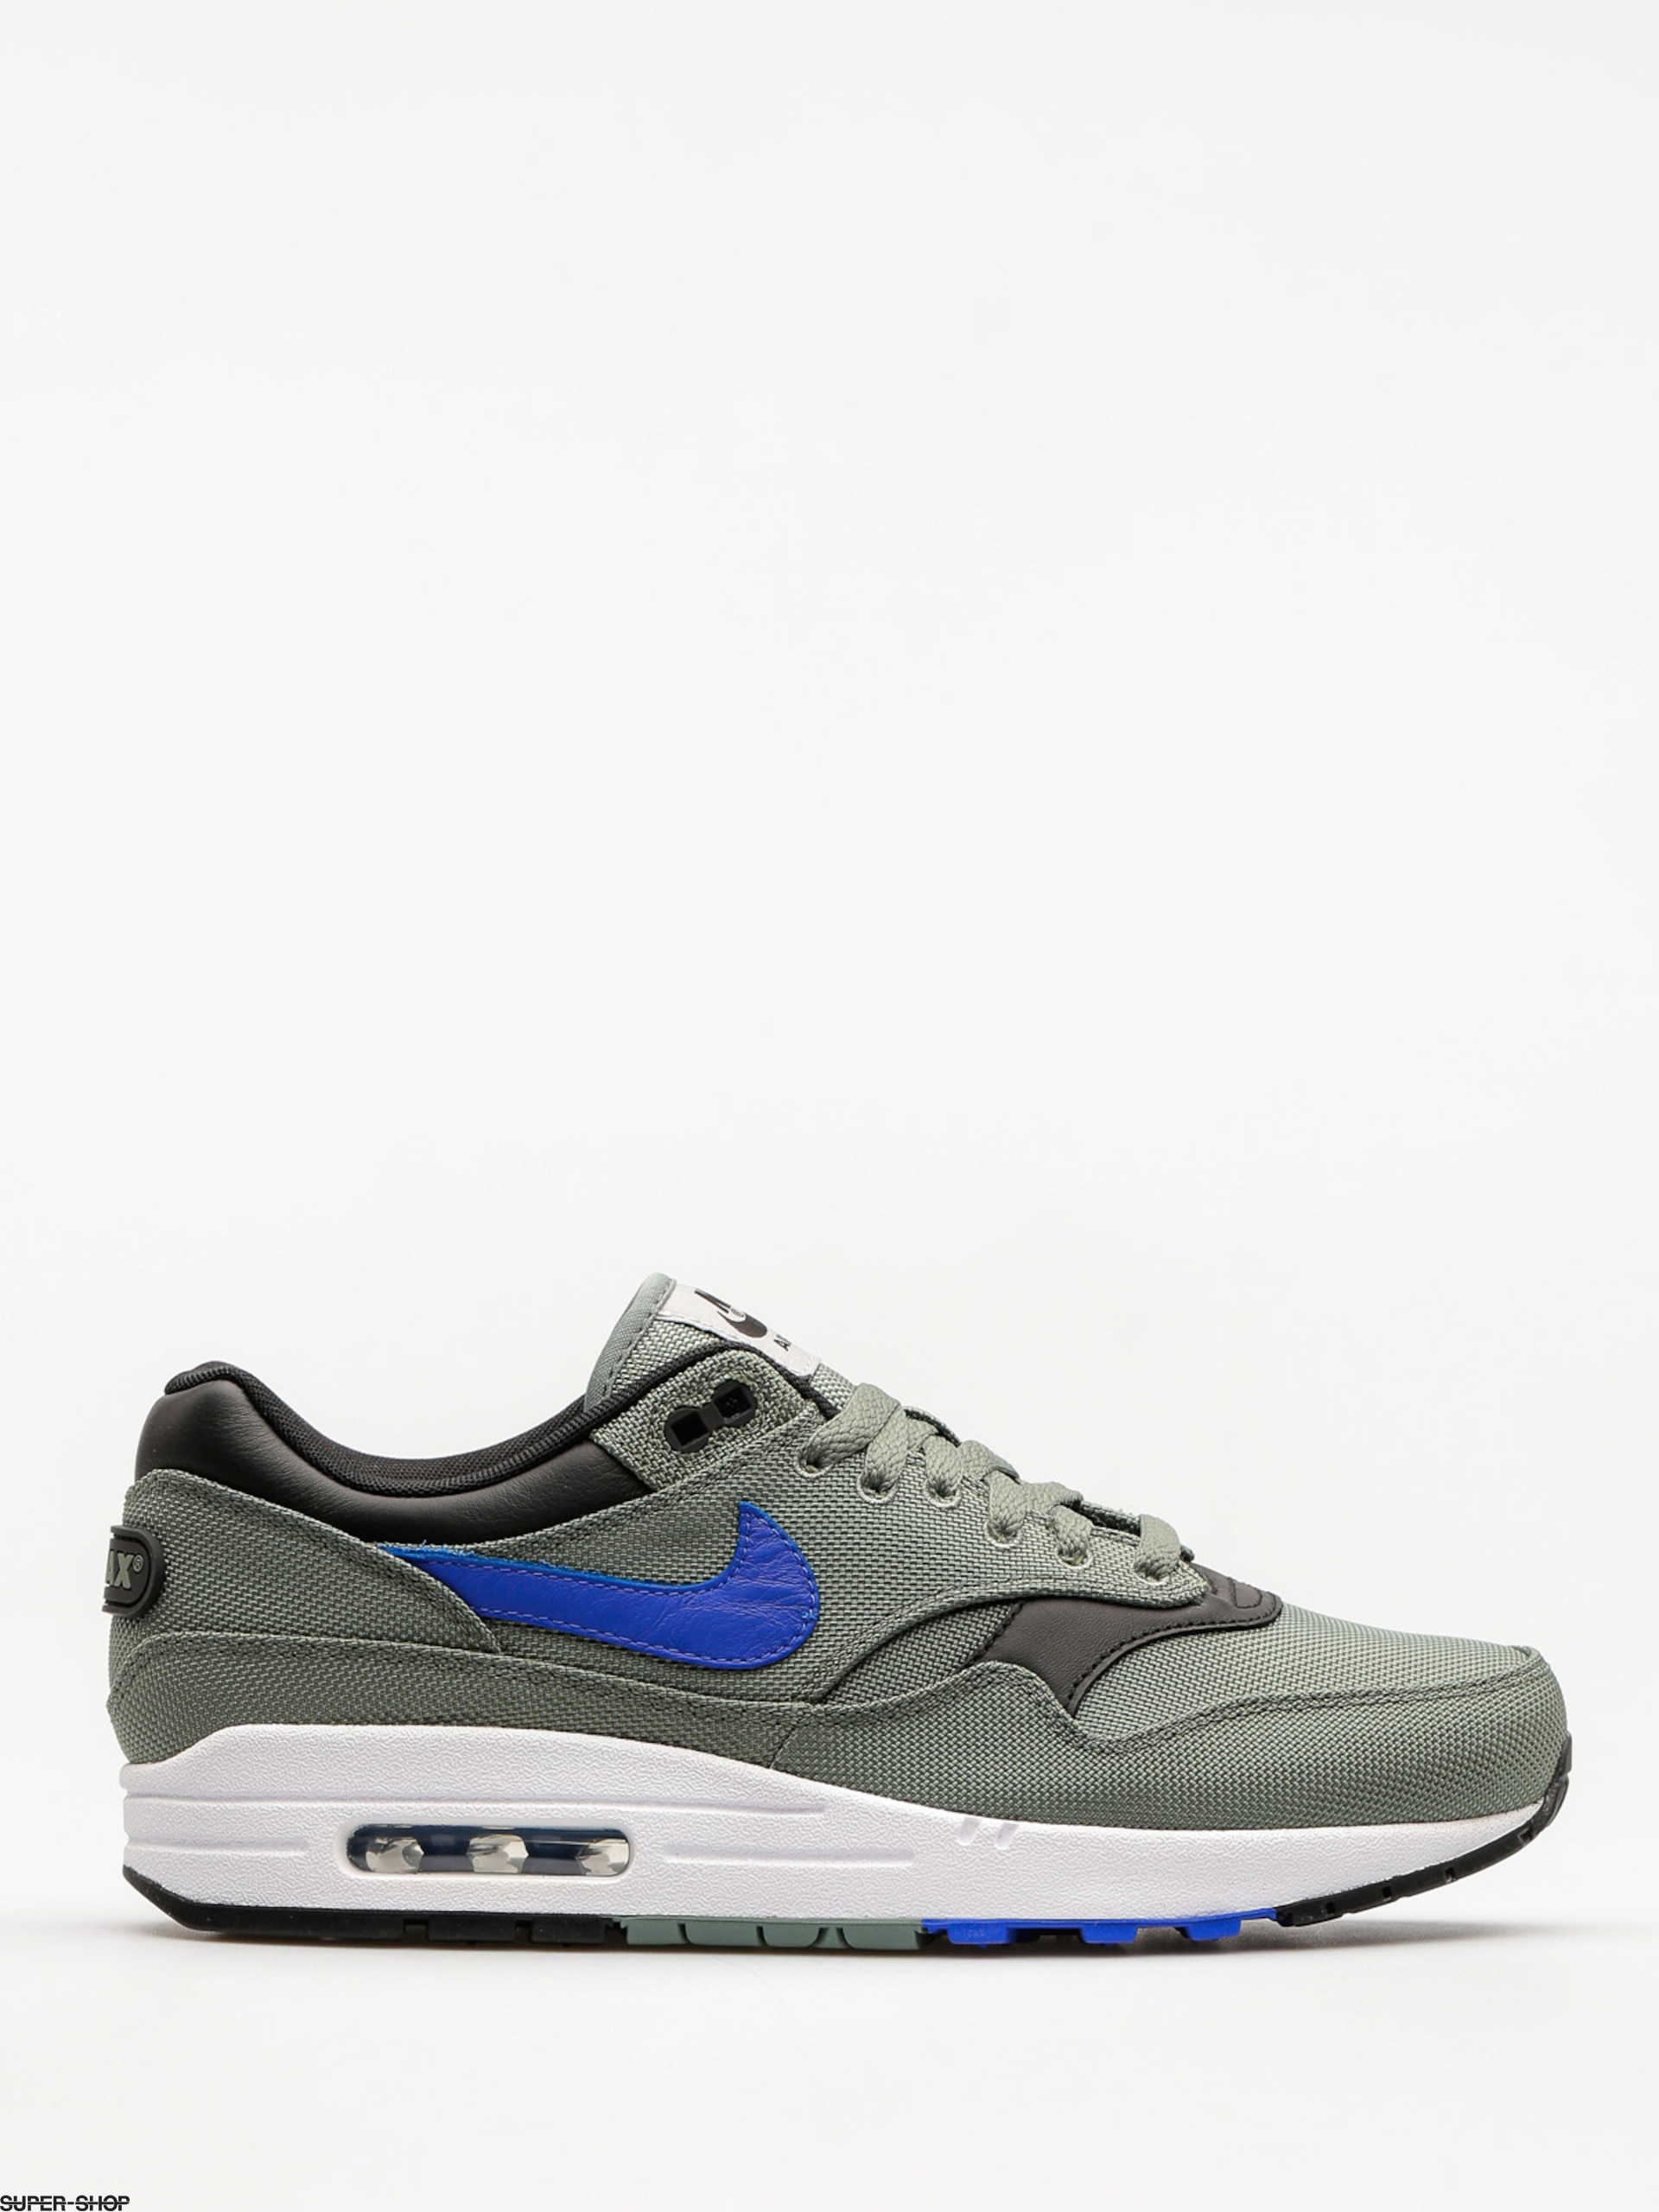 "Nike Schuhe Air Max 1 Premium (clay green/hyper royal white black ""93 logo pack"")"